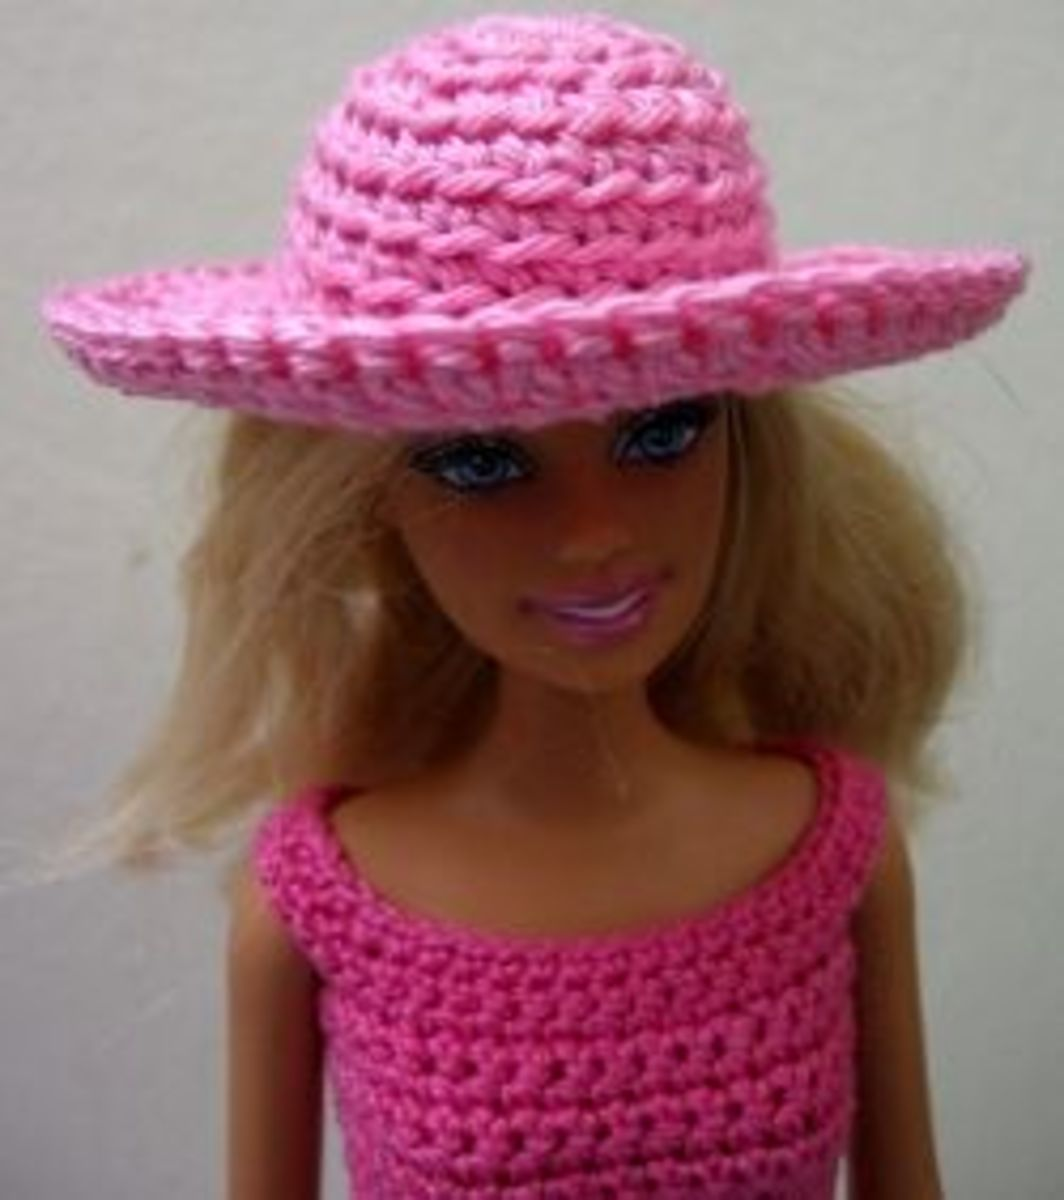 how to crochet barbie doll hat (pattern)